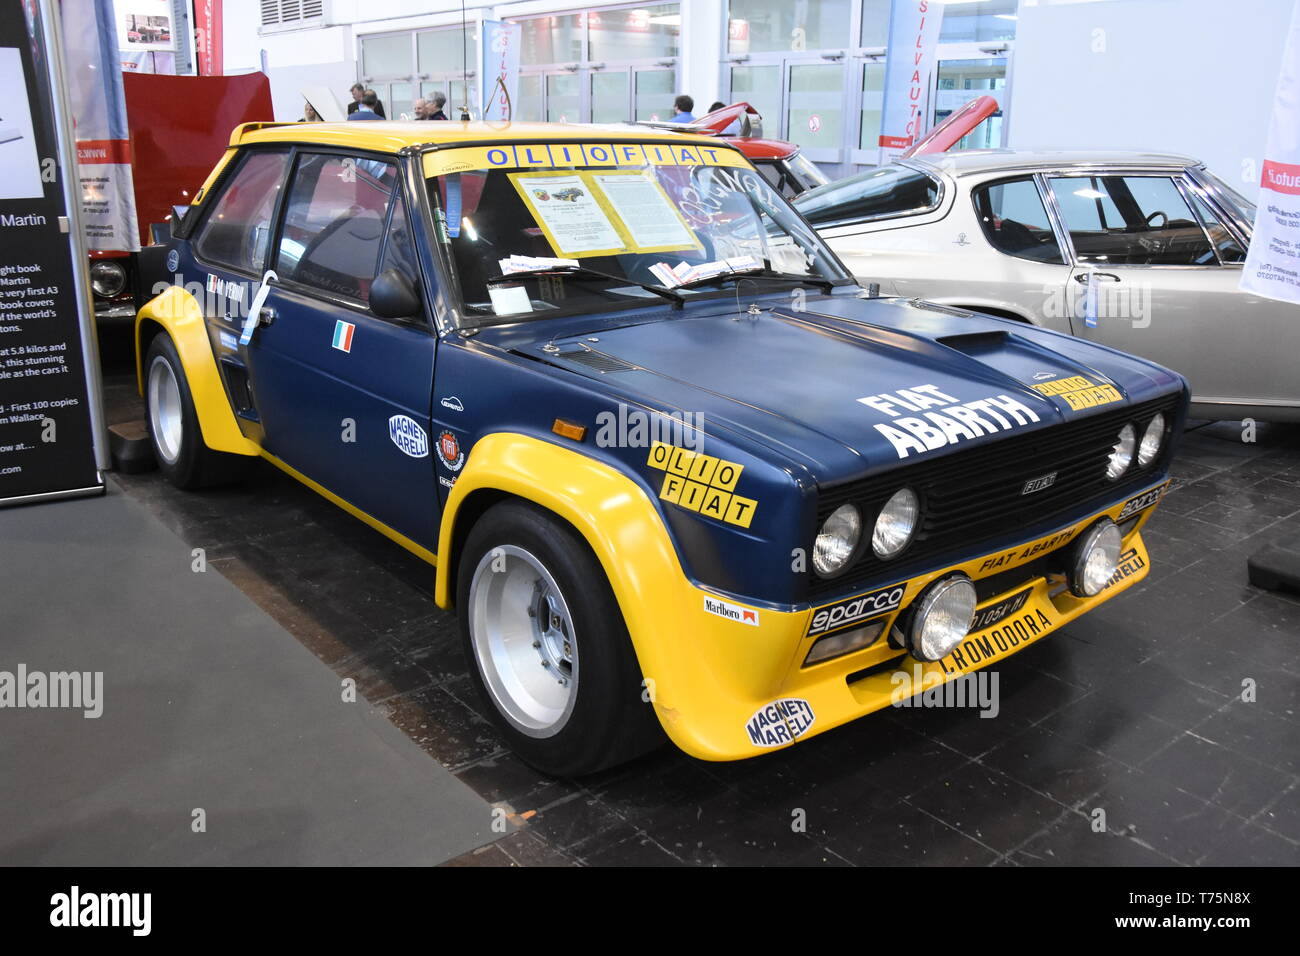 Fiat 131 High Resolution Stock Photography And Images Alamy